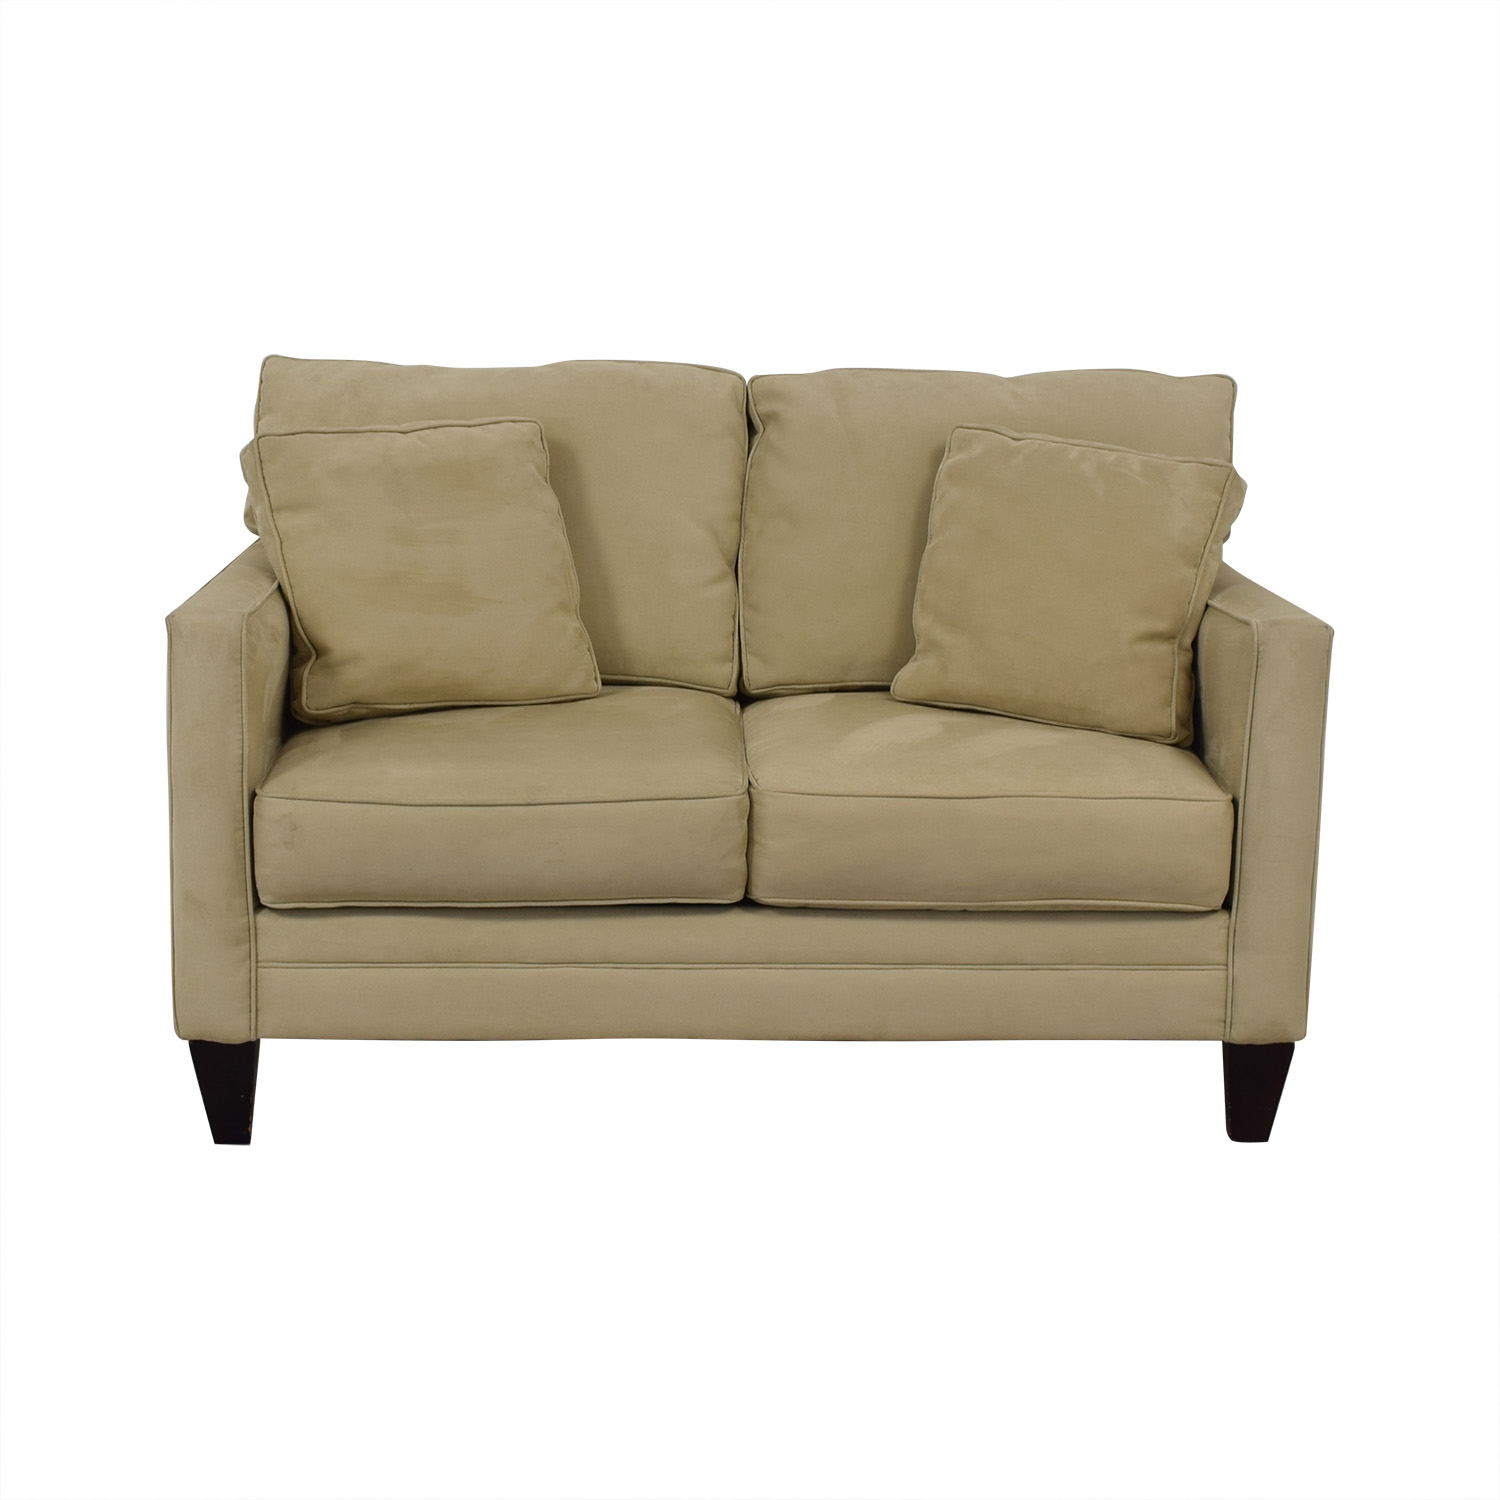 Bauhaus Furniture Suede Loveseat sale